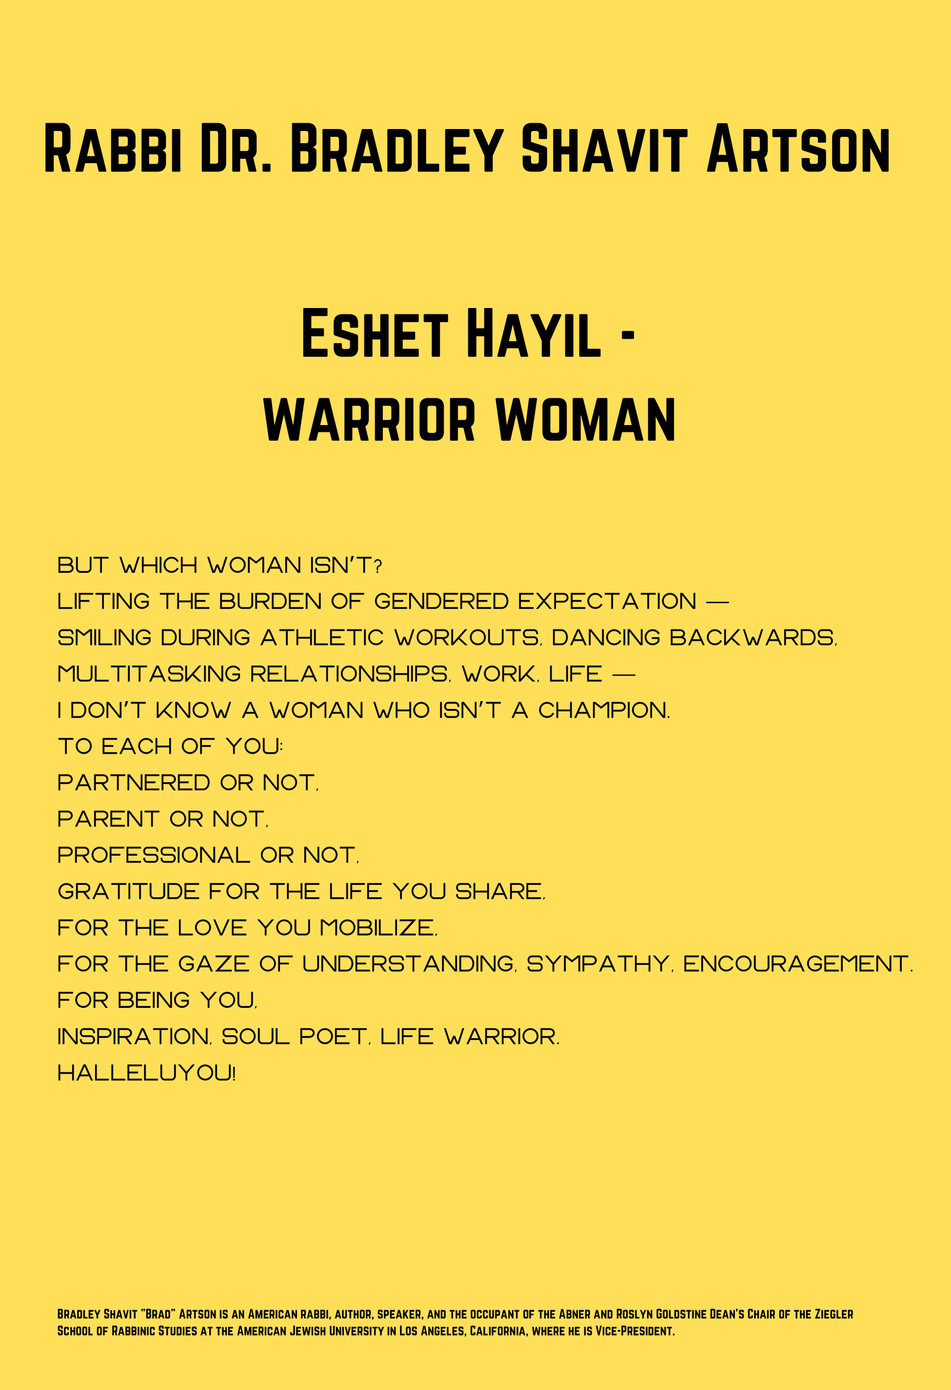 Rabbi Dr. Bradley Shavit Artson: Eshet Hayil - Warrior Woman